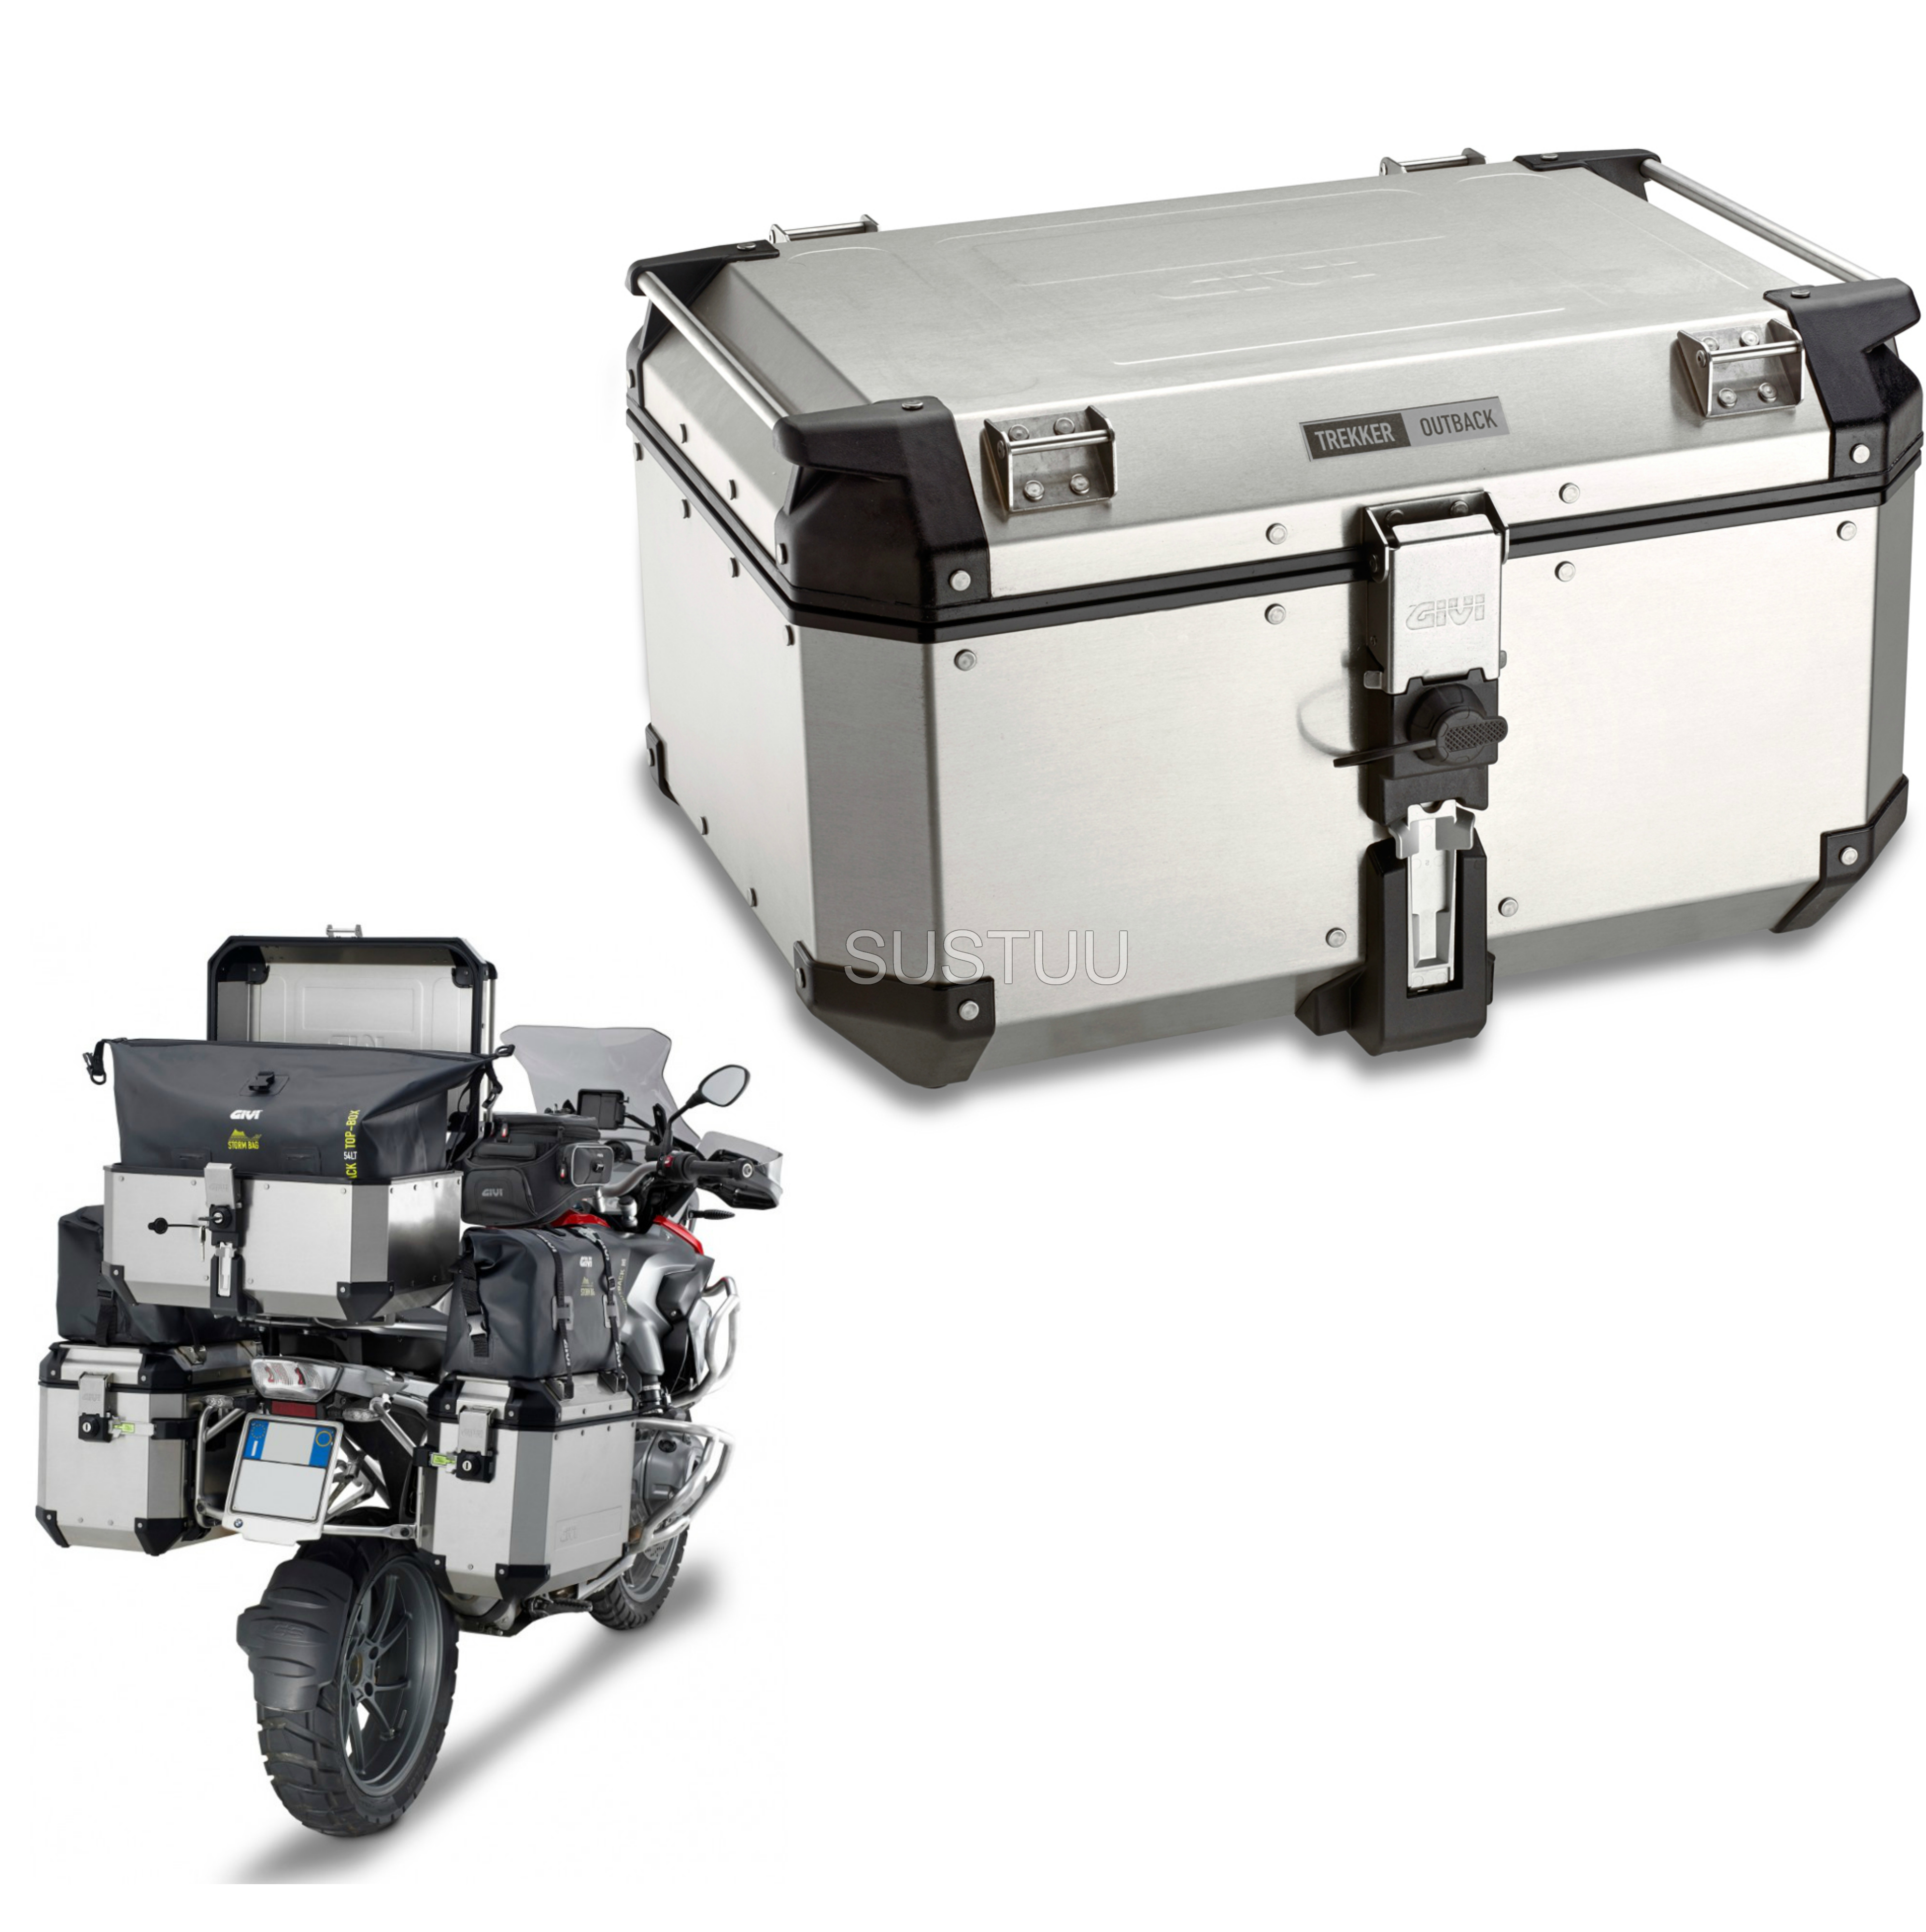 Givi OBK58B|Universal Outback Top Case|Aluminum[Metalic color]TREKKER|Motorcycle Box|58L